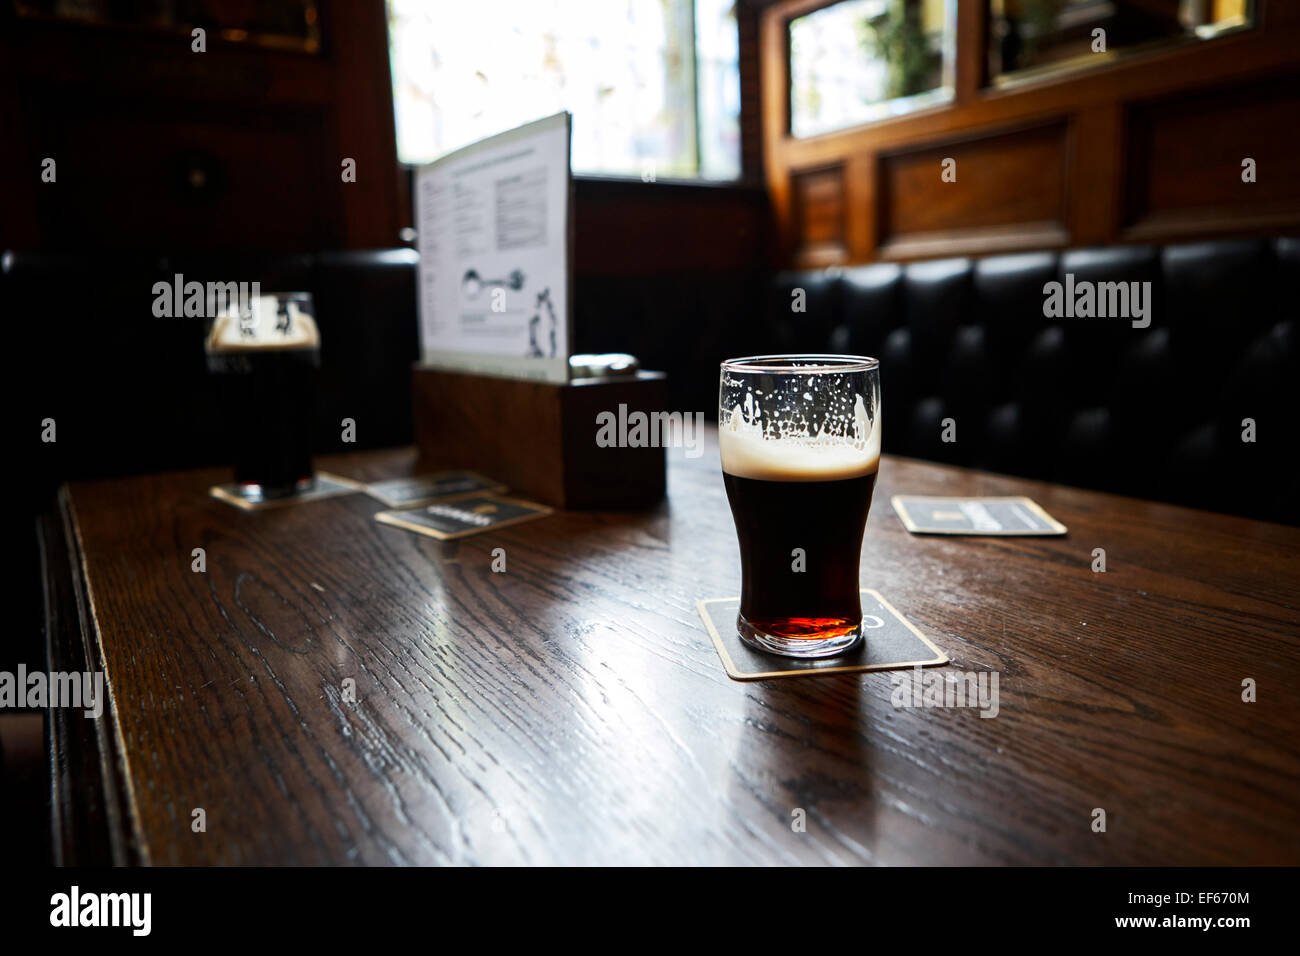 half drunk pint of guinness in an old irish pub - Stock Image